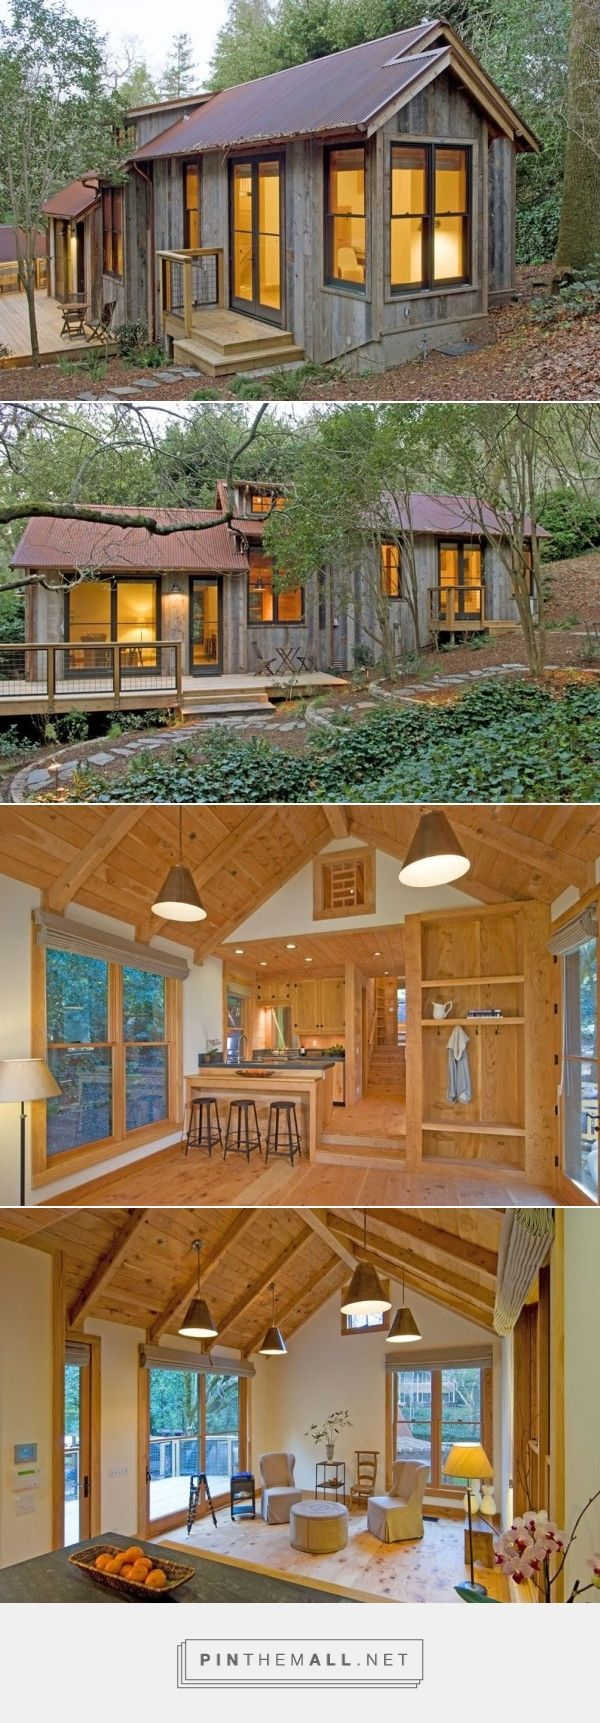 714 Sq. Ft. Cabin Built with Reclaimed Barn Wood | house ... Small Reclaimed Home Plans on eco-friendly home plans, salvage home plans, kitchen home plans, industrial home plans, organic home plans, shabby chic home plans, green home plans, renovated home plans, metal home plans, custom home plans, recycled home plans, wood home plans, natural home plans, design home plans, timber home plans, garden home plans, rustic home plans, vintage home plans, warehouse home plans, glass home plans,